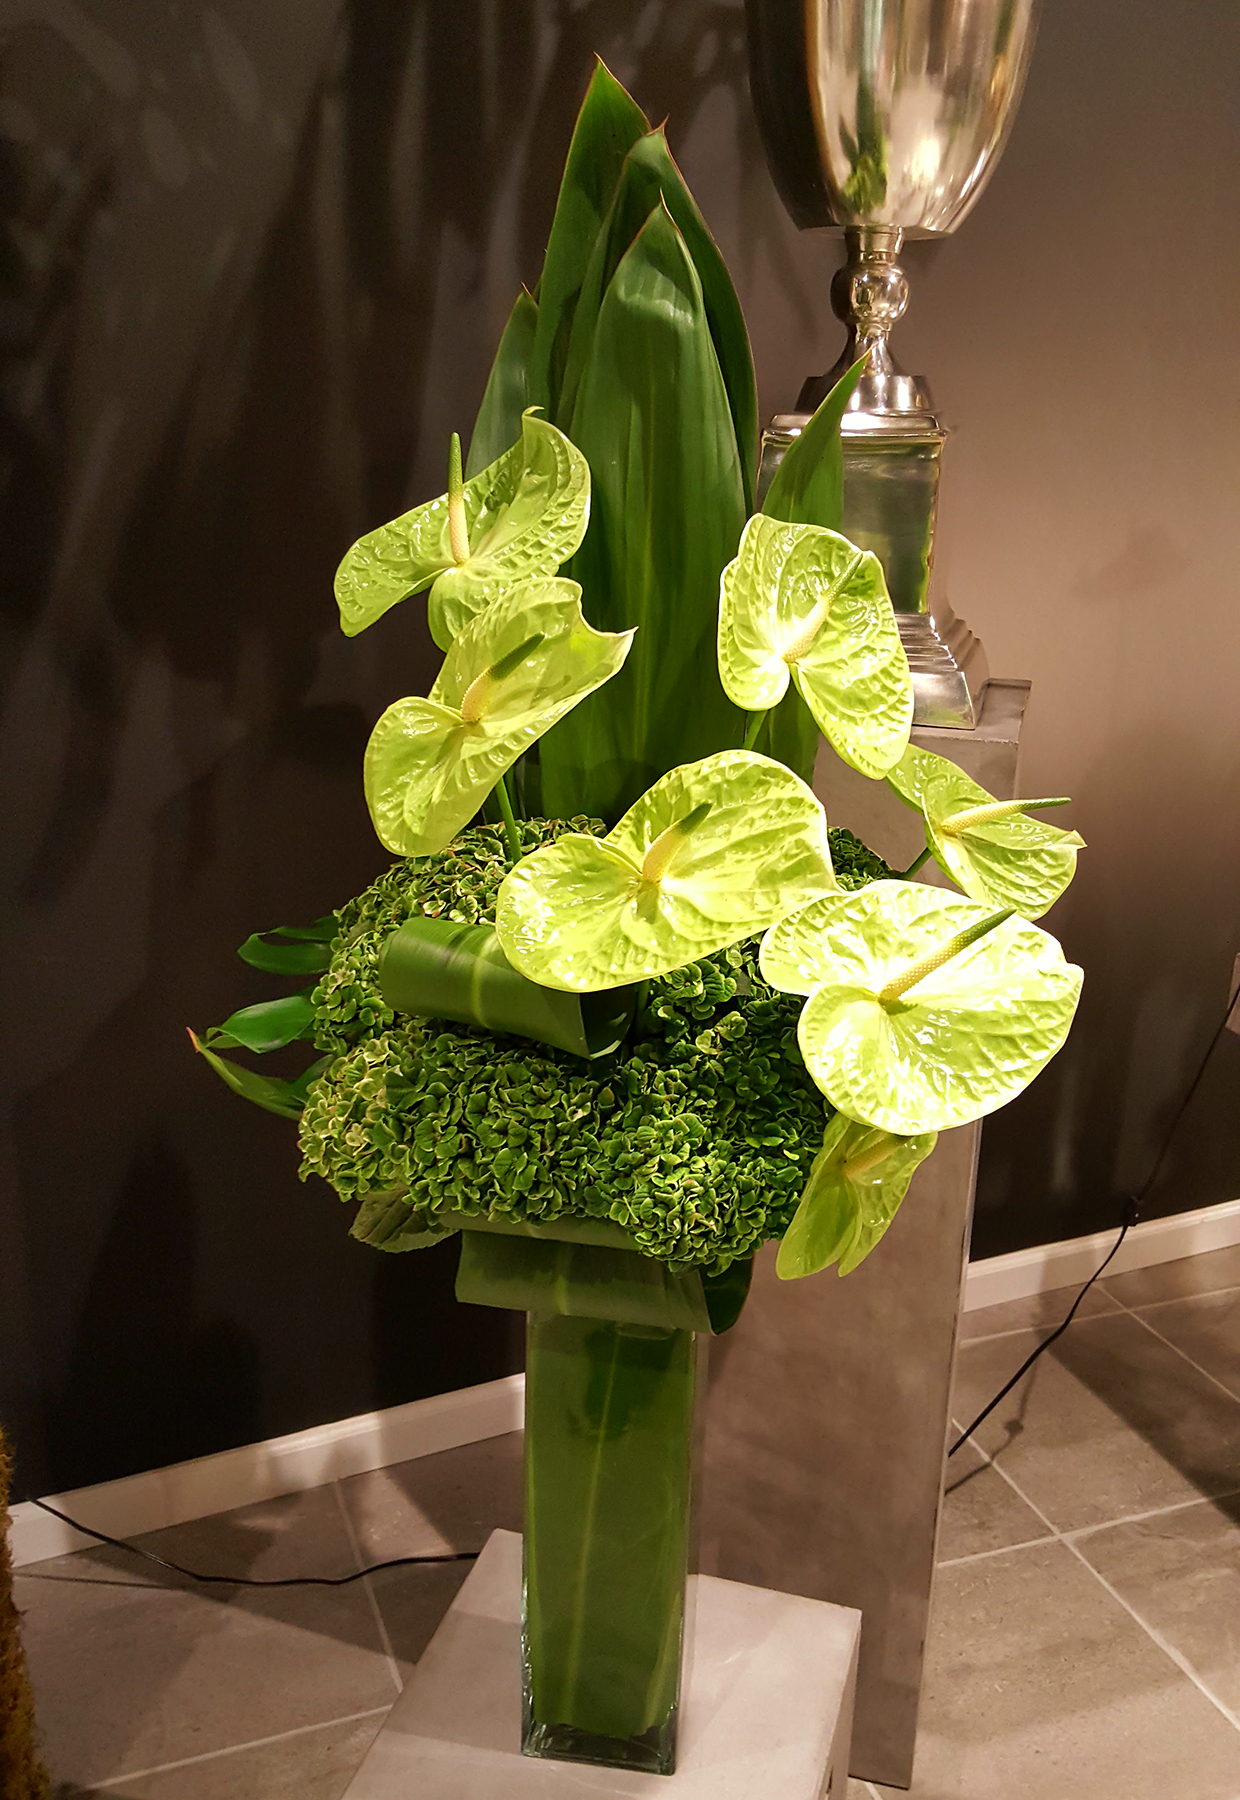 Green orchids with misc. greenery in a beautiful office setting